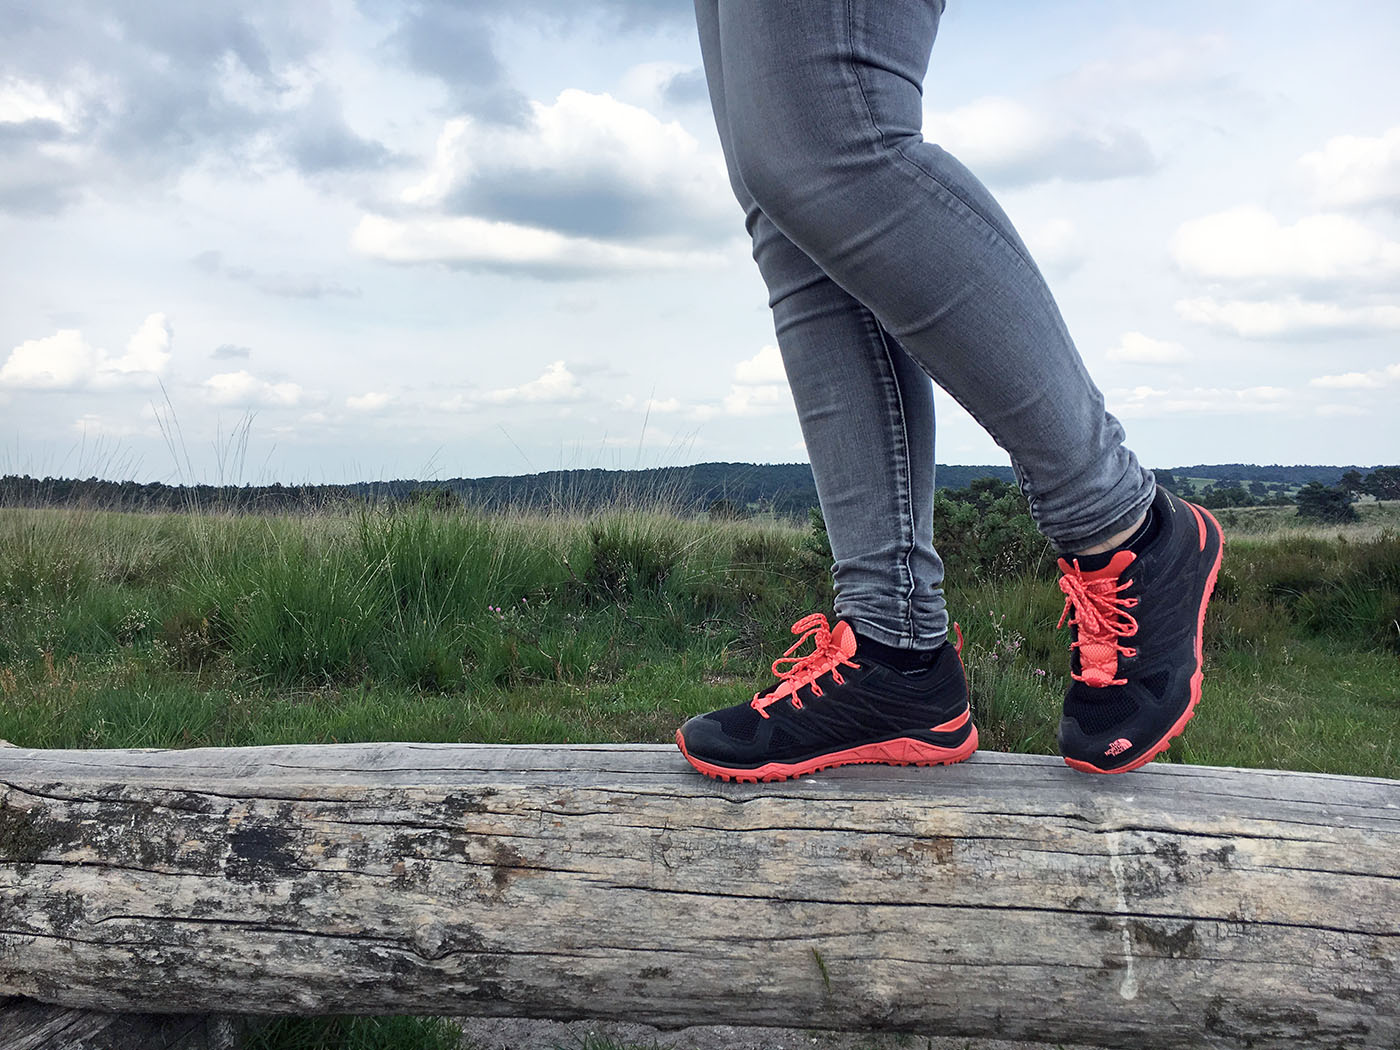 North Face Ultra Fastpack II GTX hiking shoes review